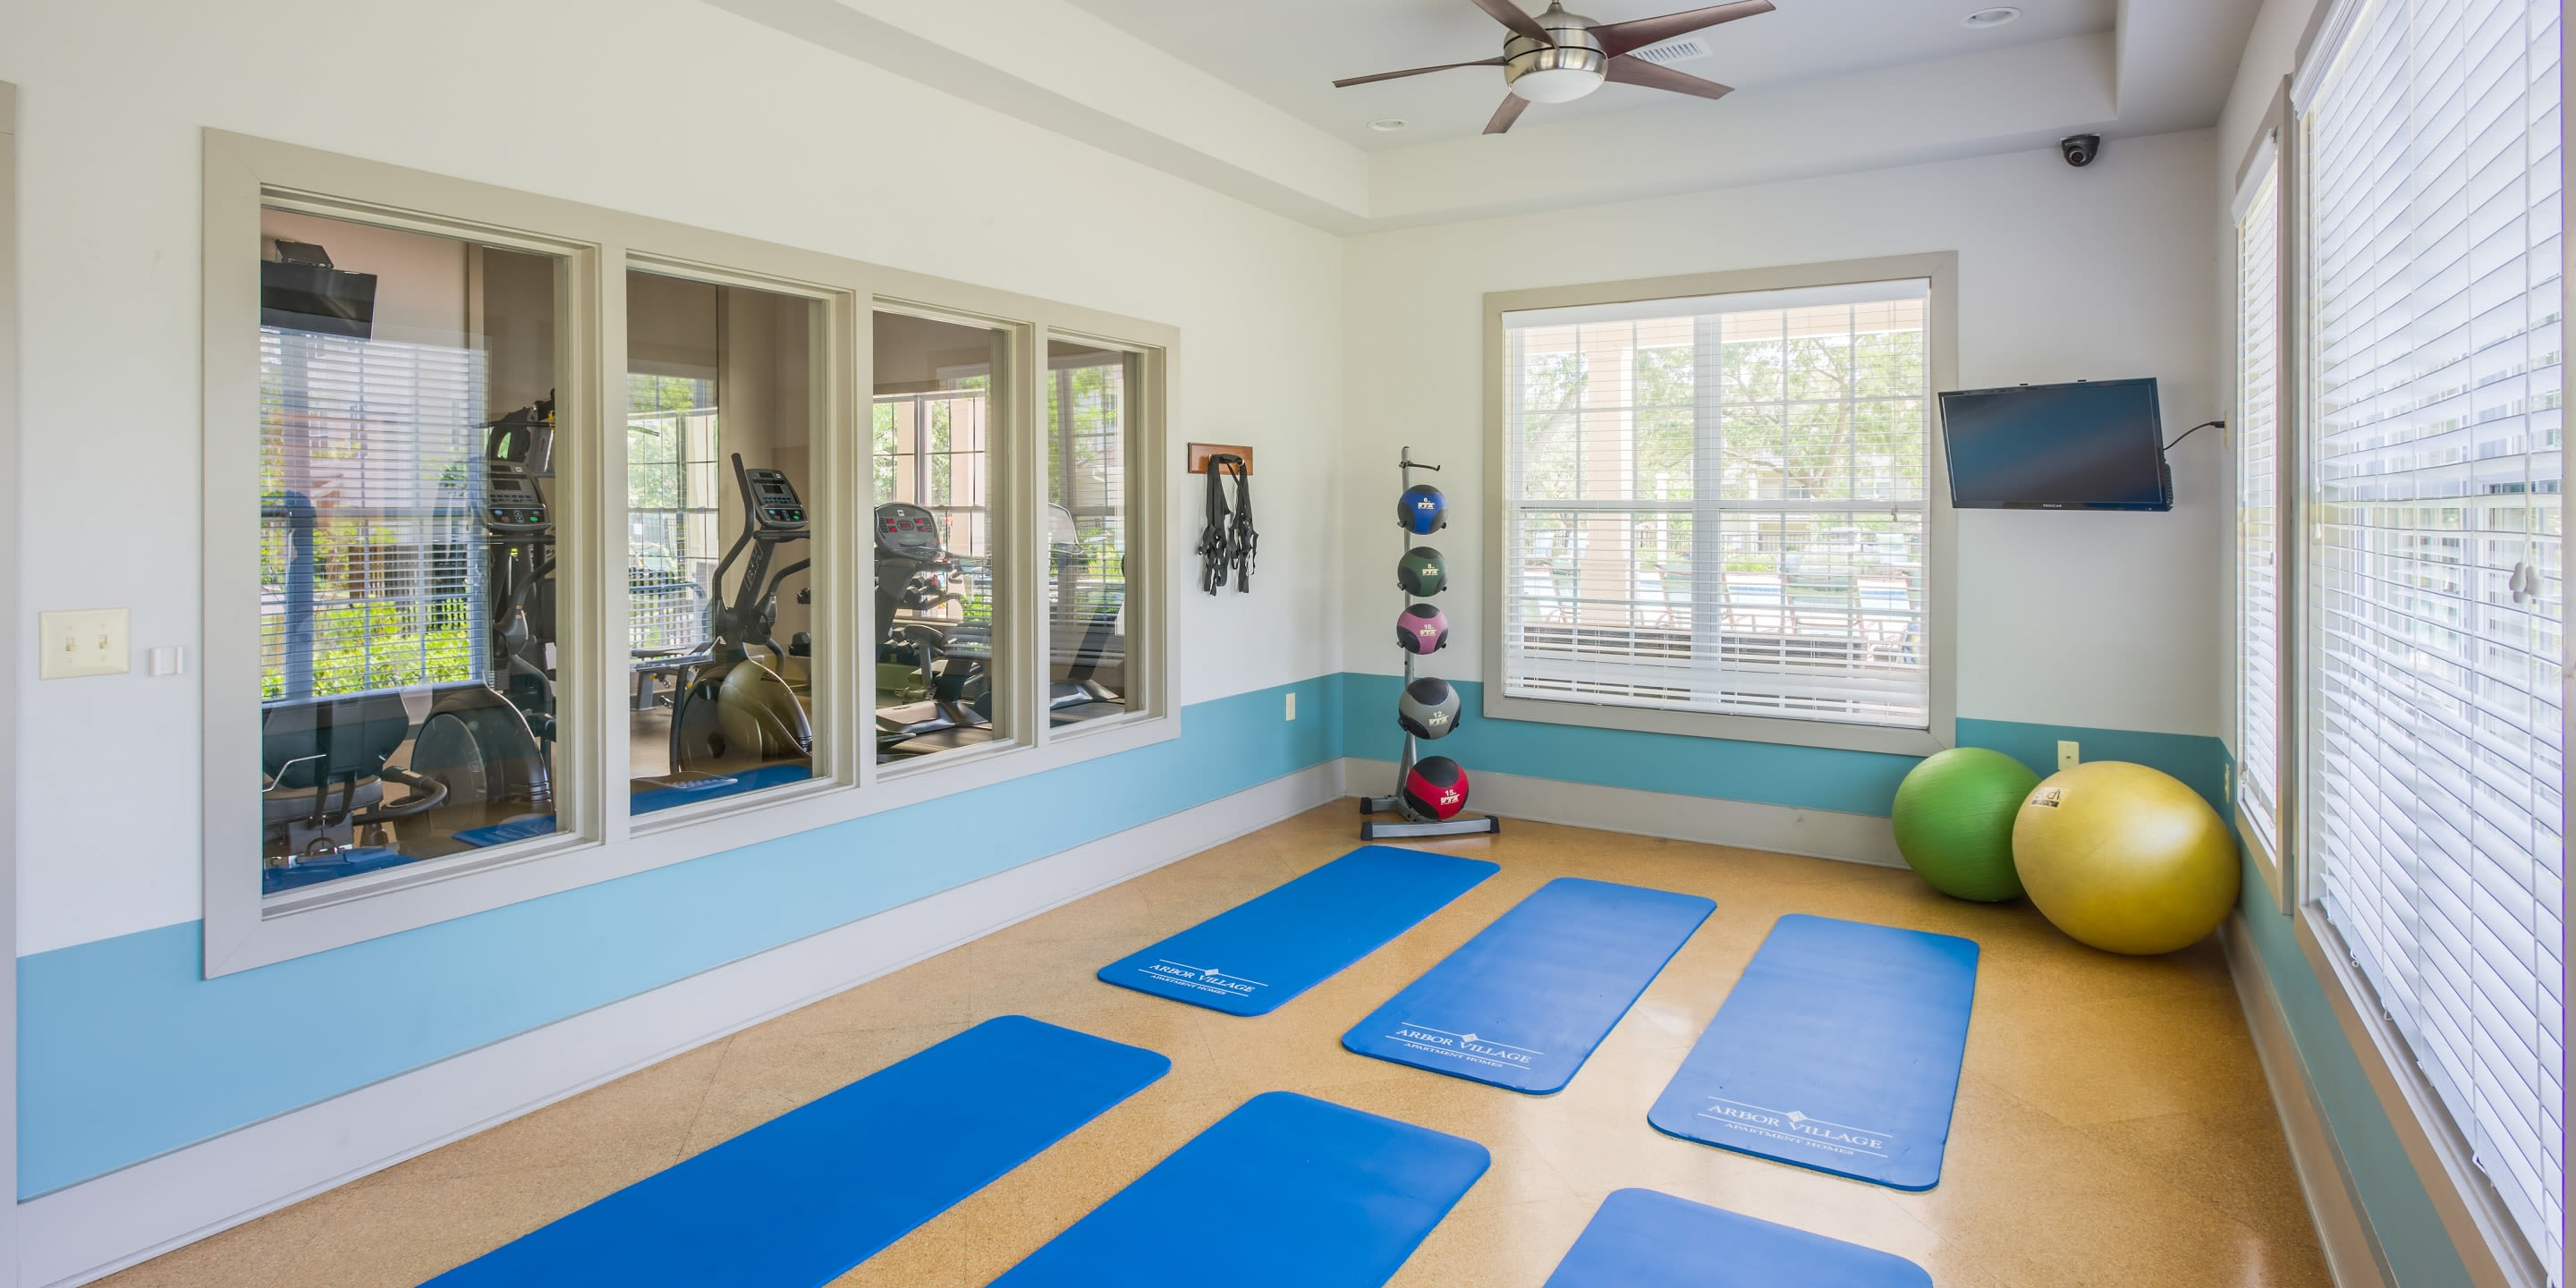 Fitness center with yoga mats at Arbor Village in Summerville, South Carolina